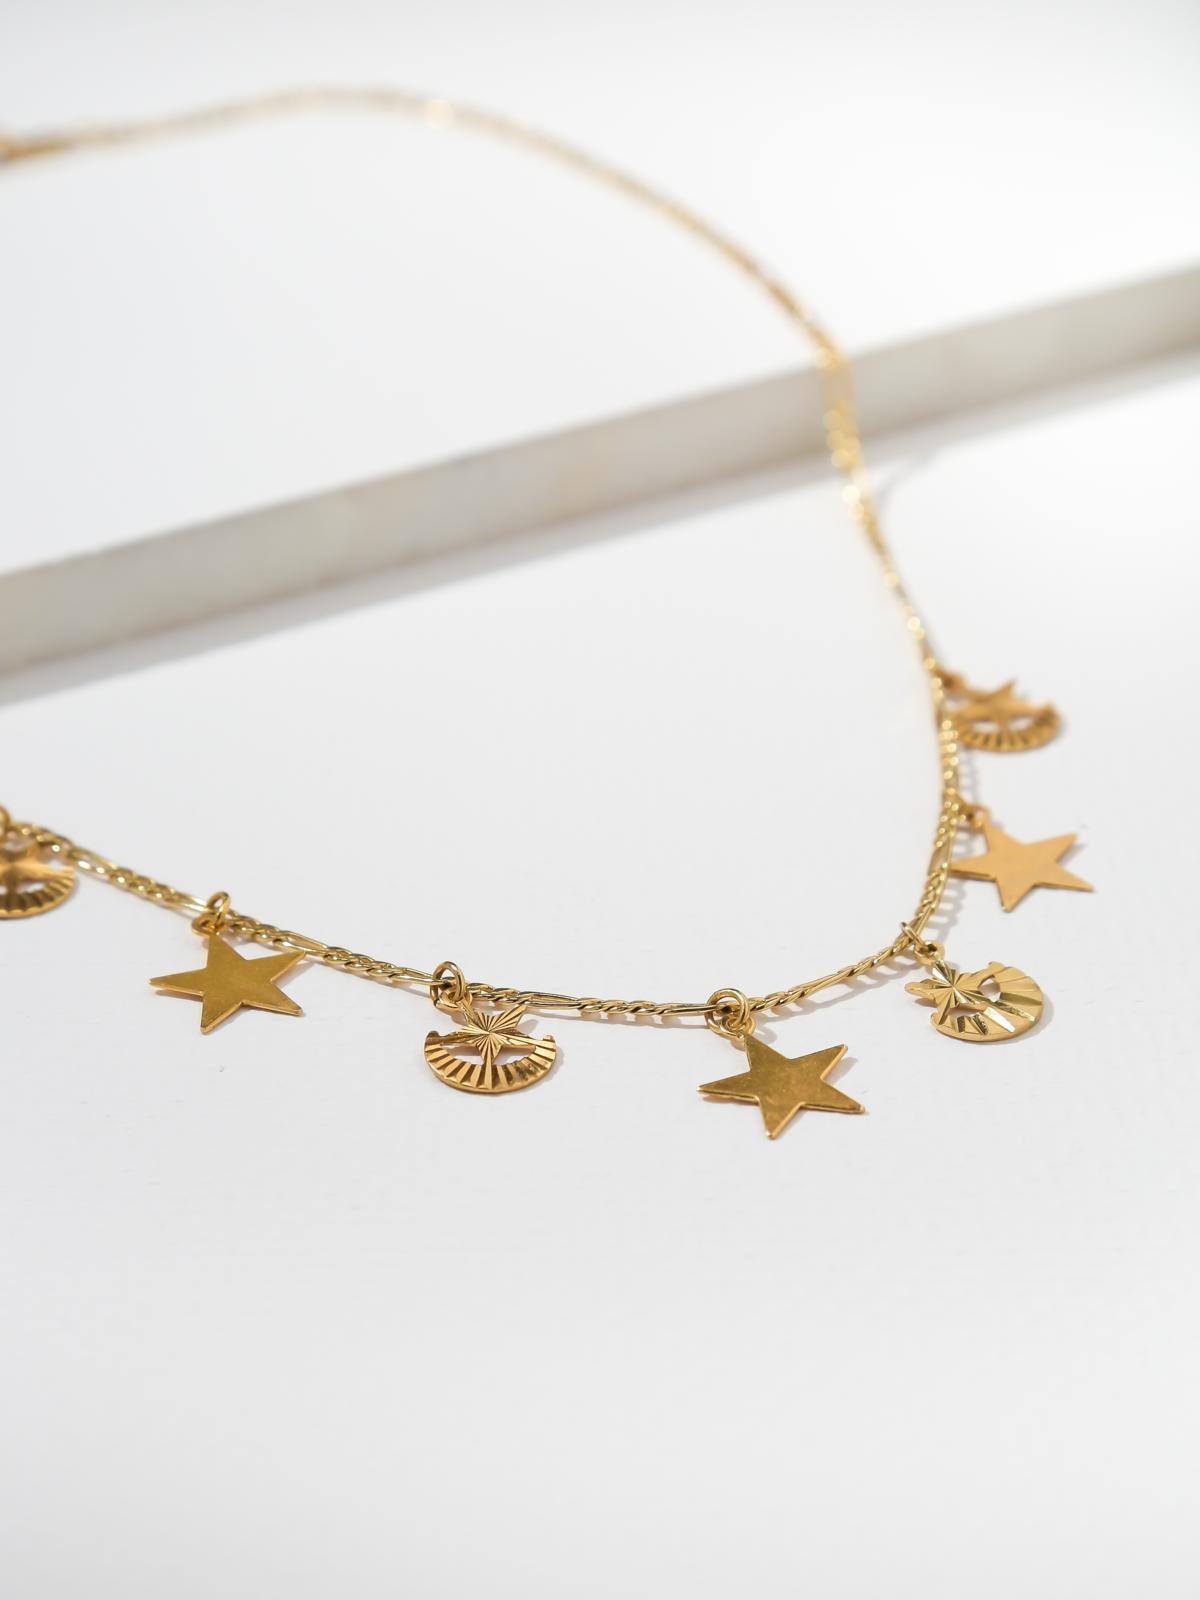 The Starshower Necklace